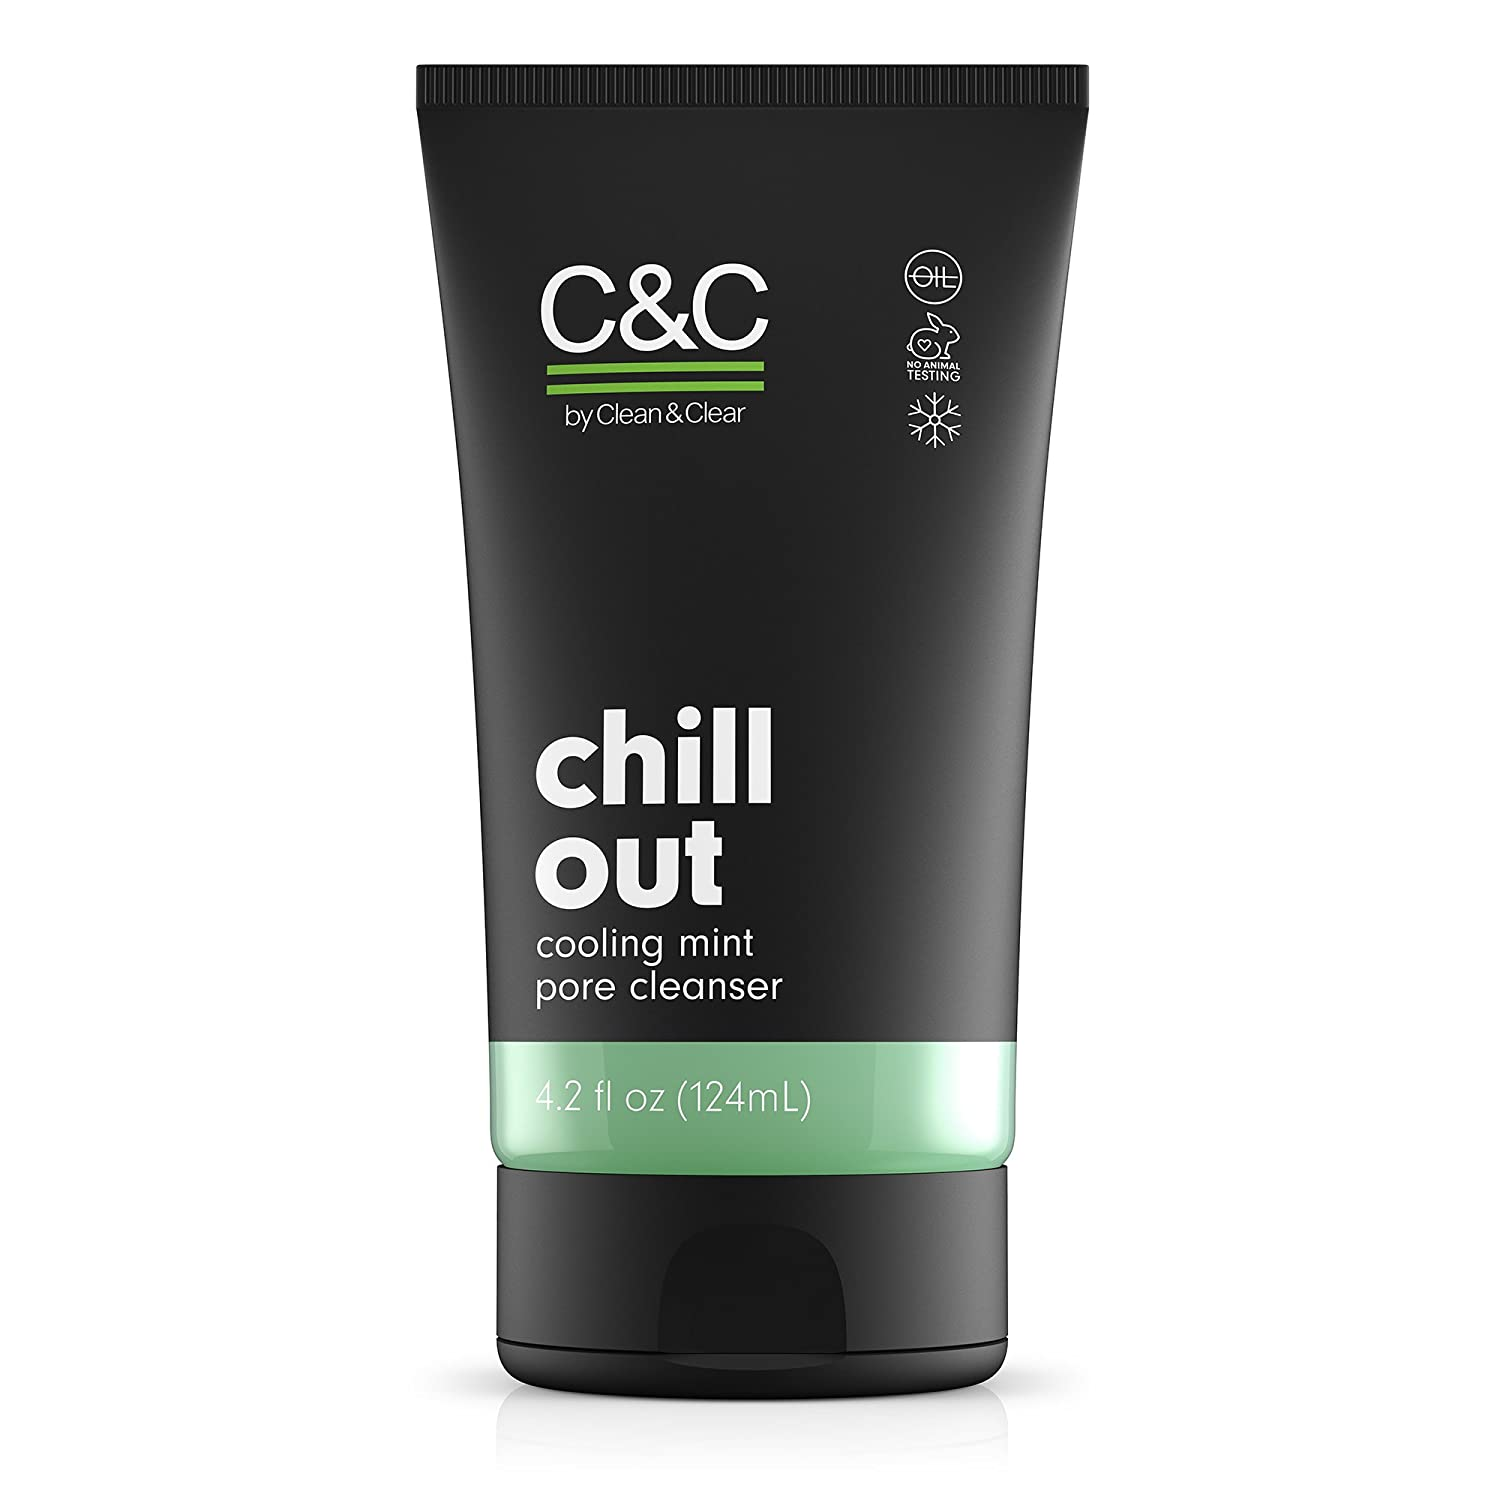 C&C by Clean & Clear Chill Out Cooling Mint Pore Facial Cleanser, Oil Free, Minty Fresh, Removes Dirt and Oil, Face Wash, 4.2 fl oz